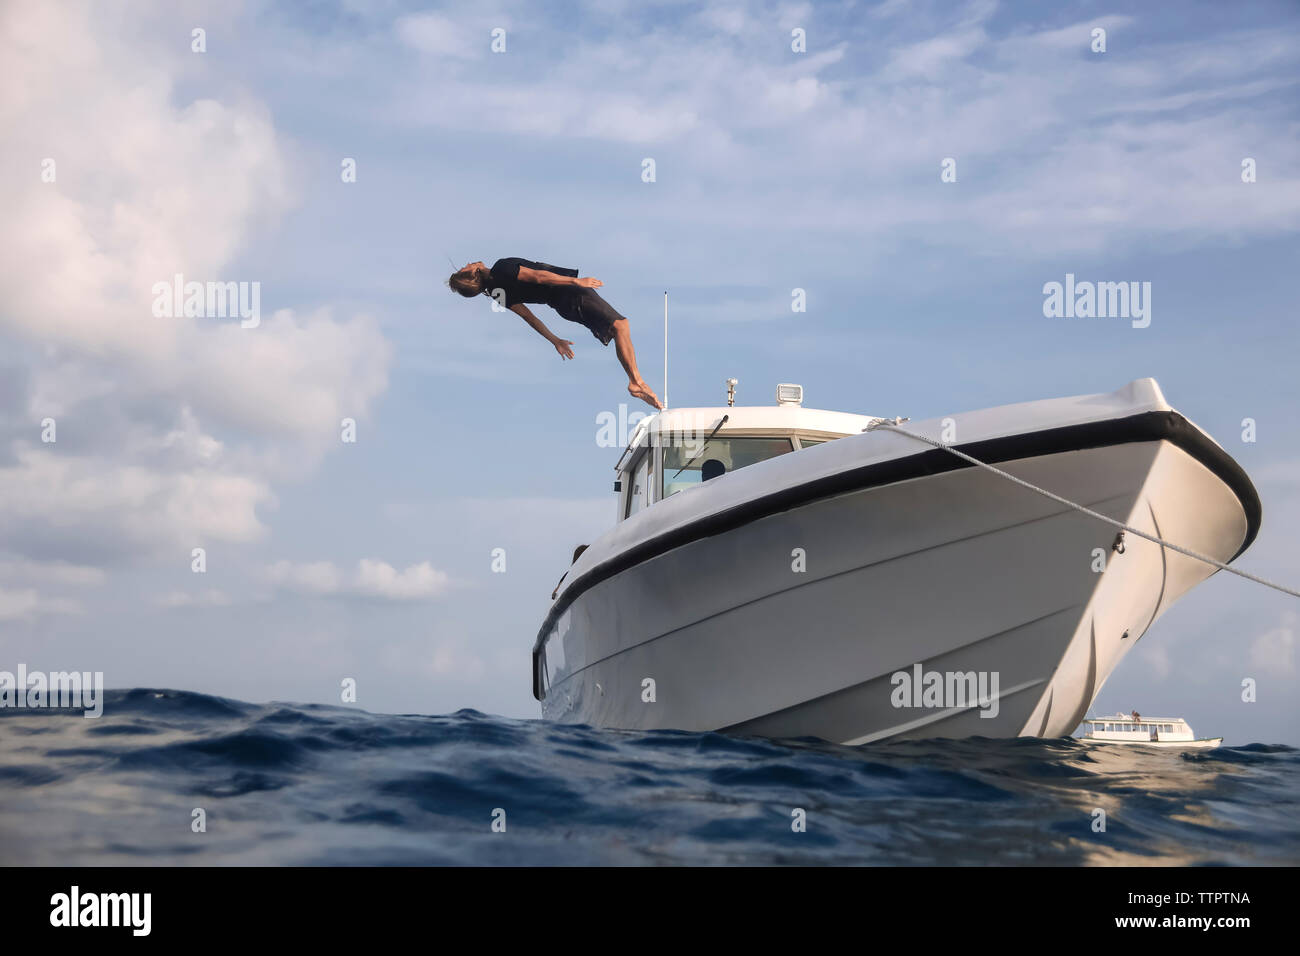 Low angle view of man diving into sea from yacht against cloudy sky Stock Photo